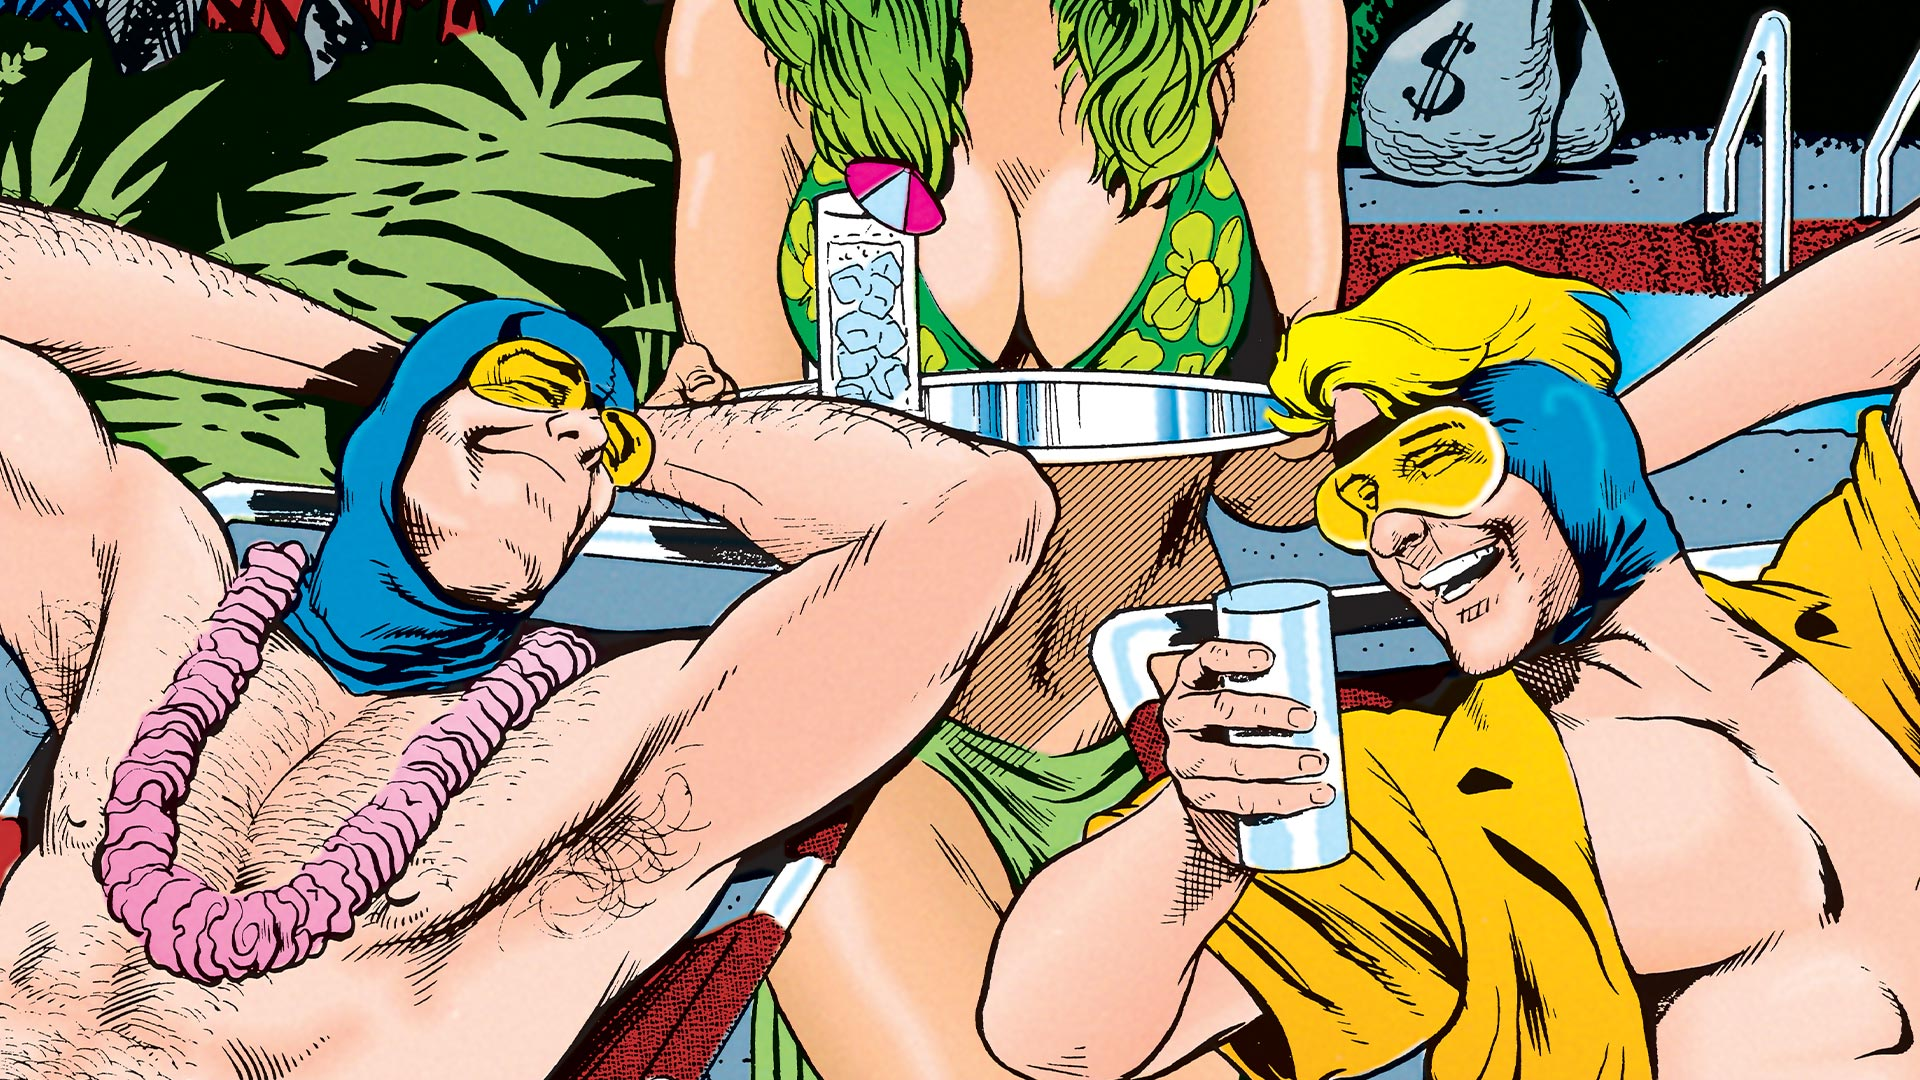 JLA_Staycation_dcu_heroc2_MH_v111.jpg